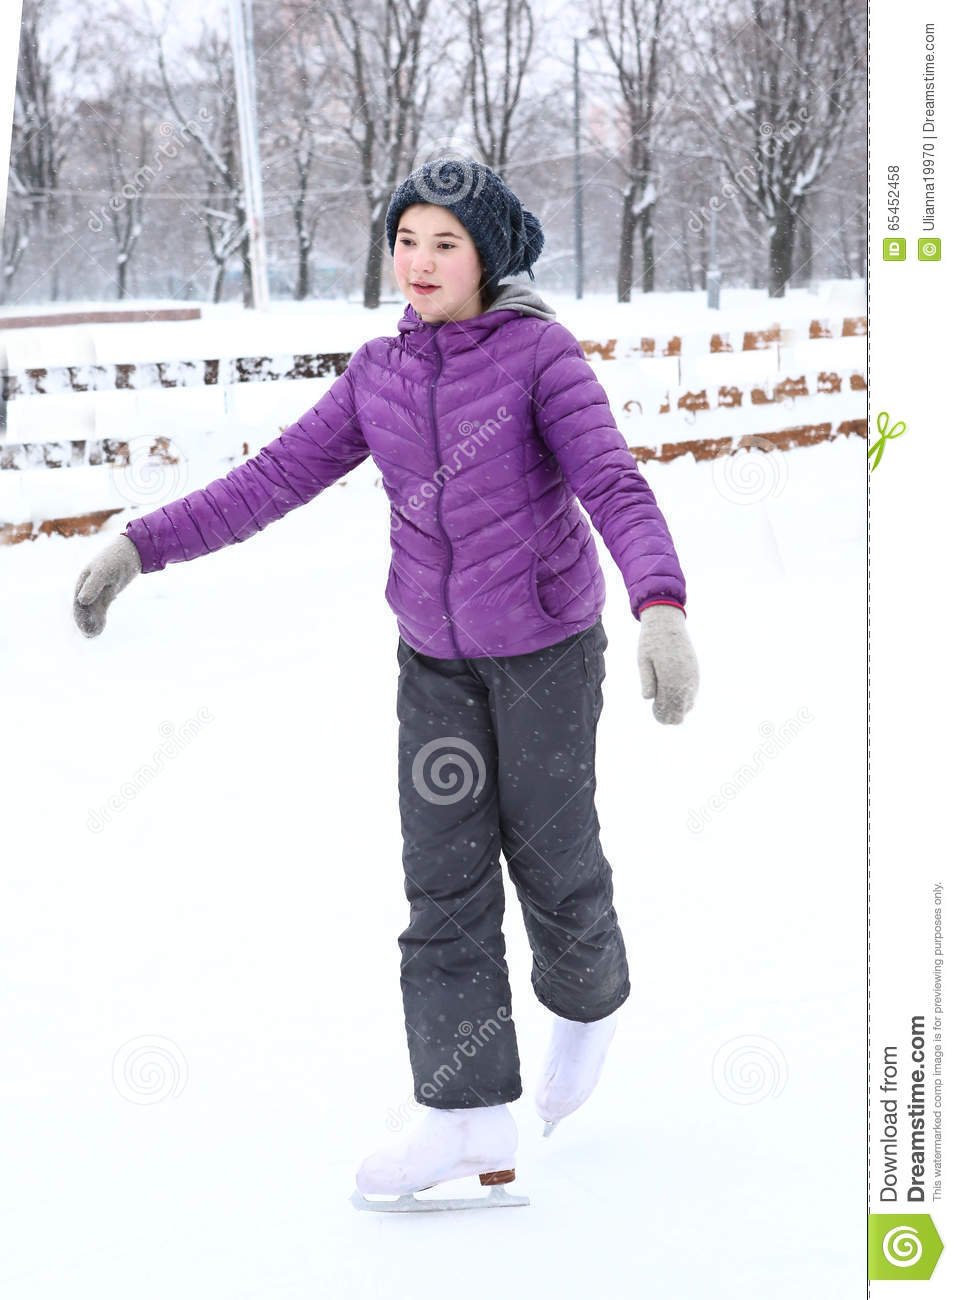 Girl in dawn jacket skating on the ice rink